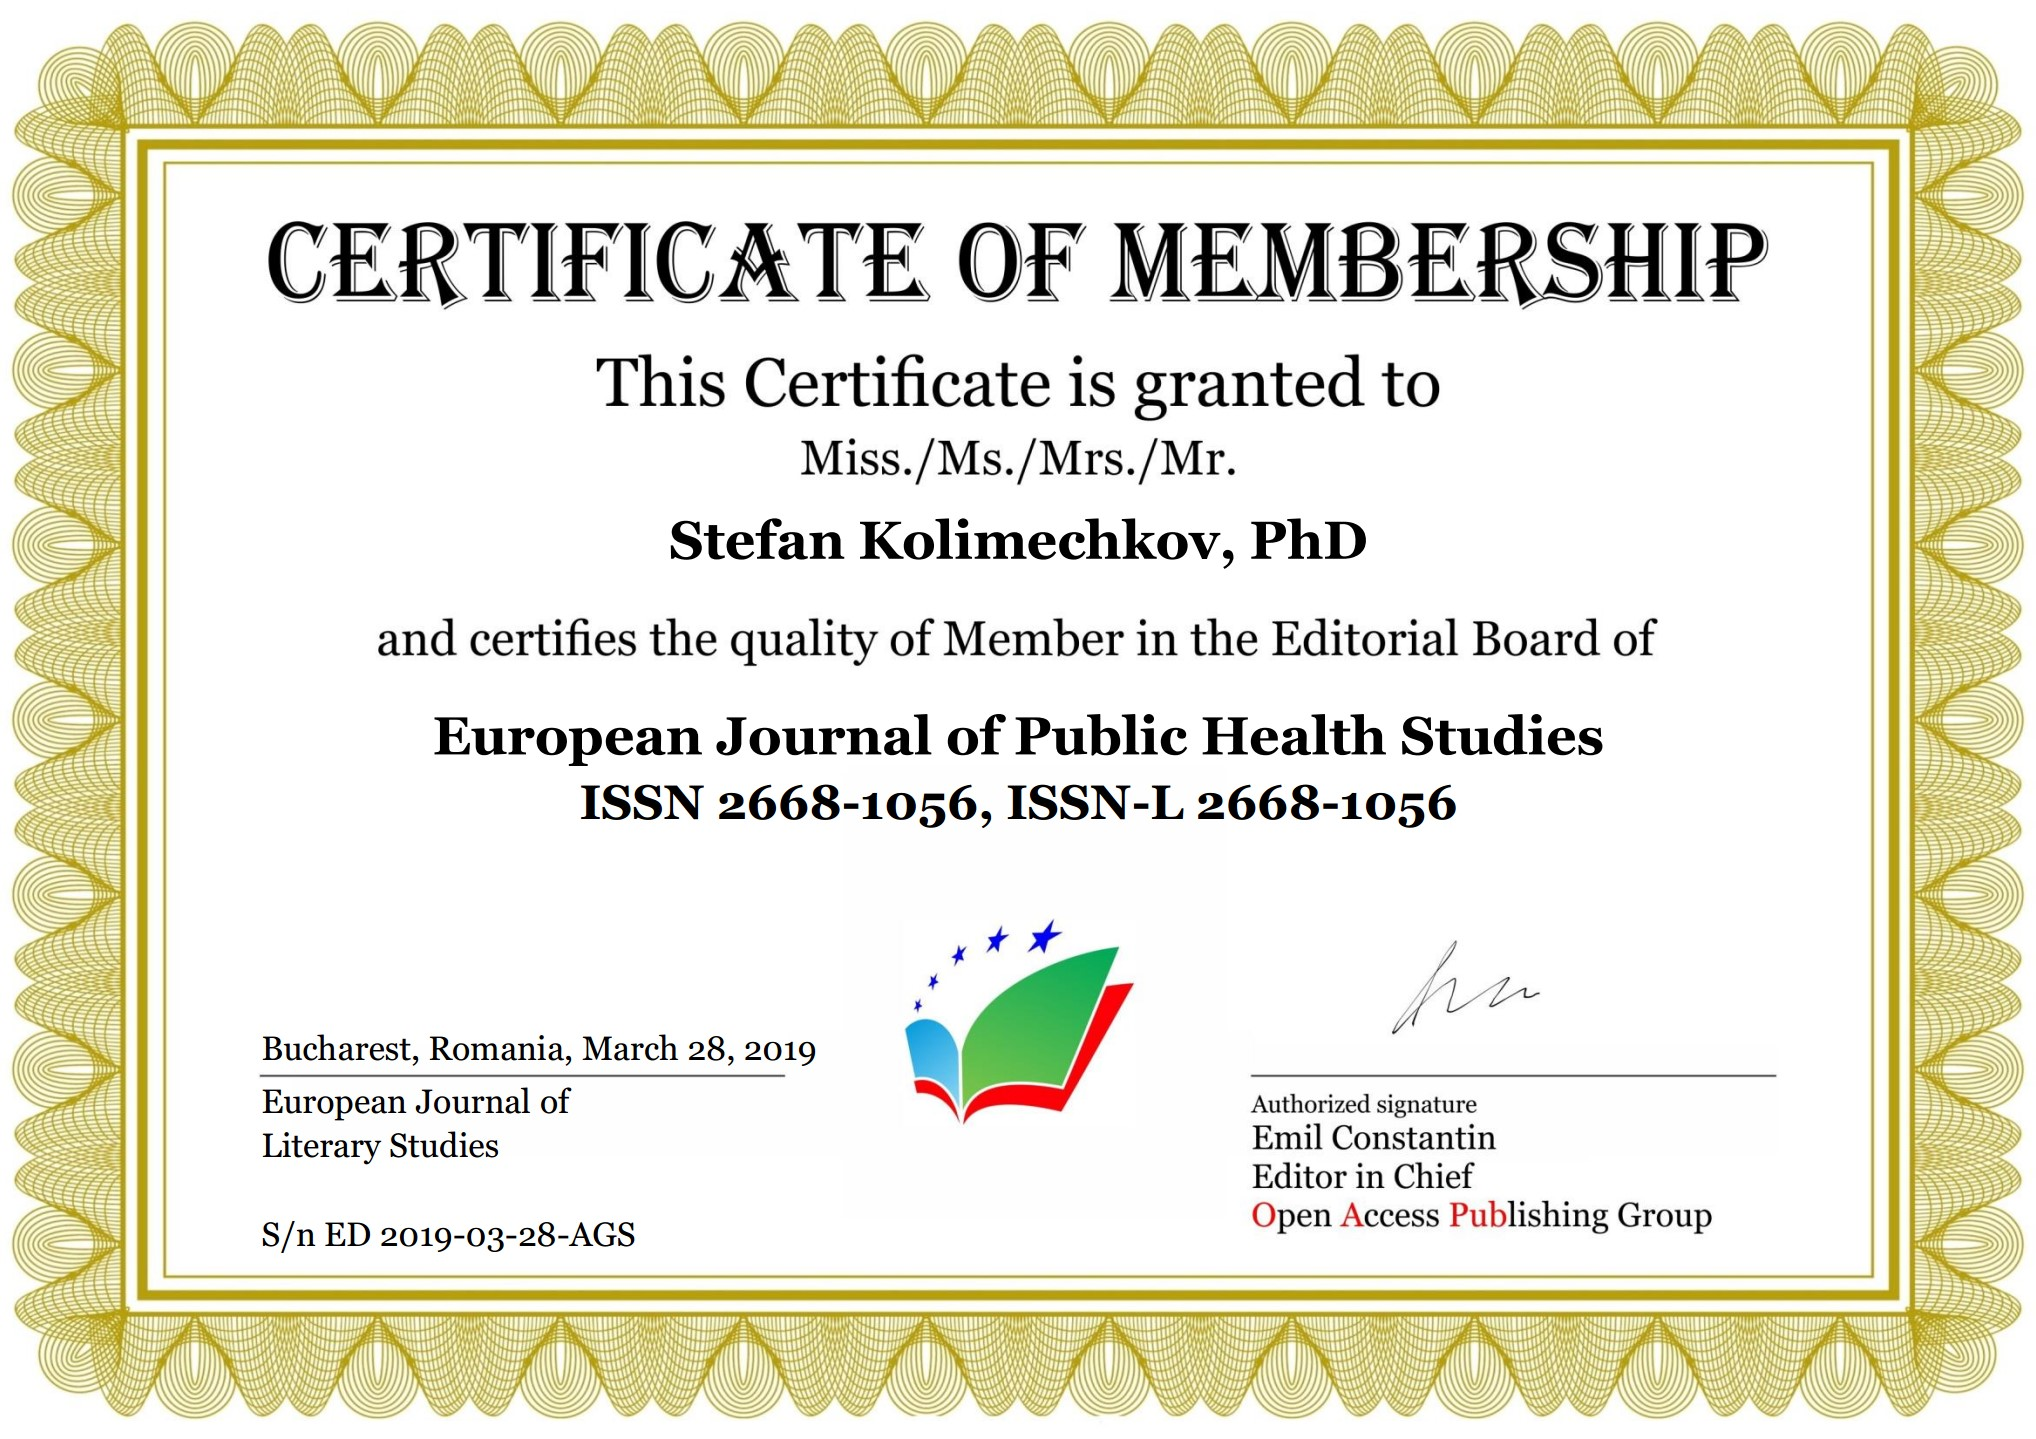 Member of the Editorial Board of the European Journal of Public Health Studies